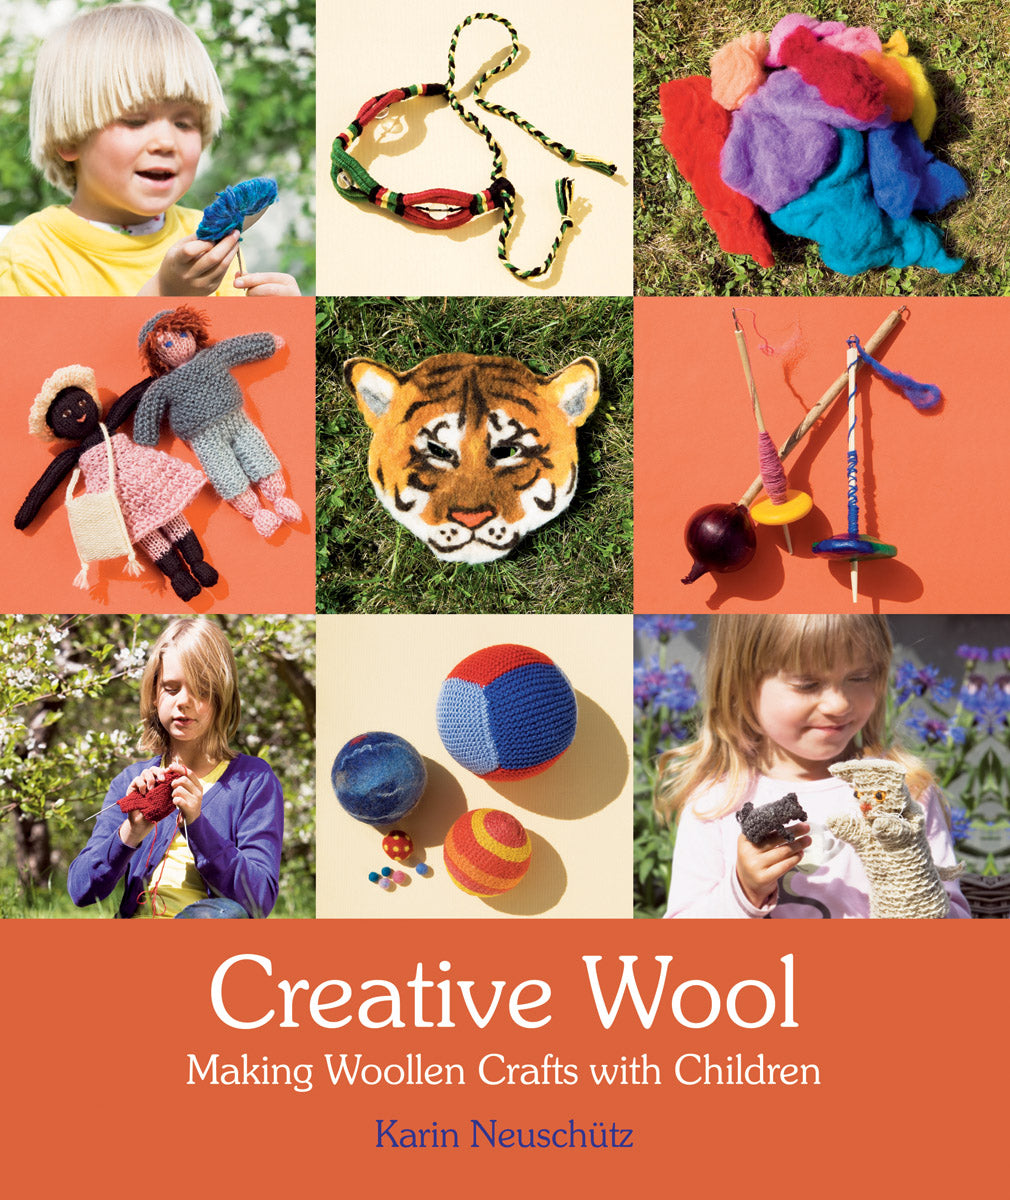 Creative Wool Making Woollen Crafts with Children by Karin Neuschütz